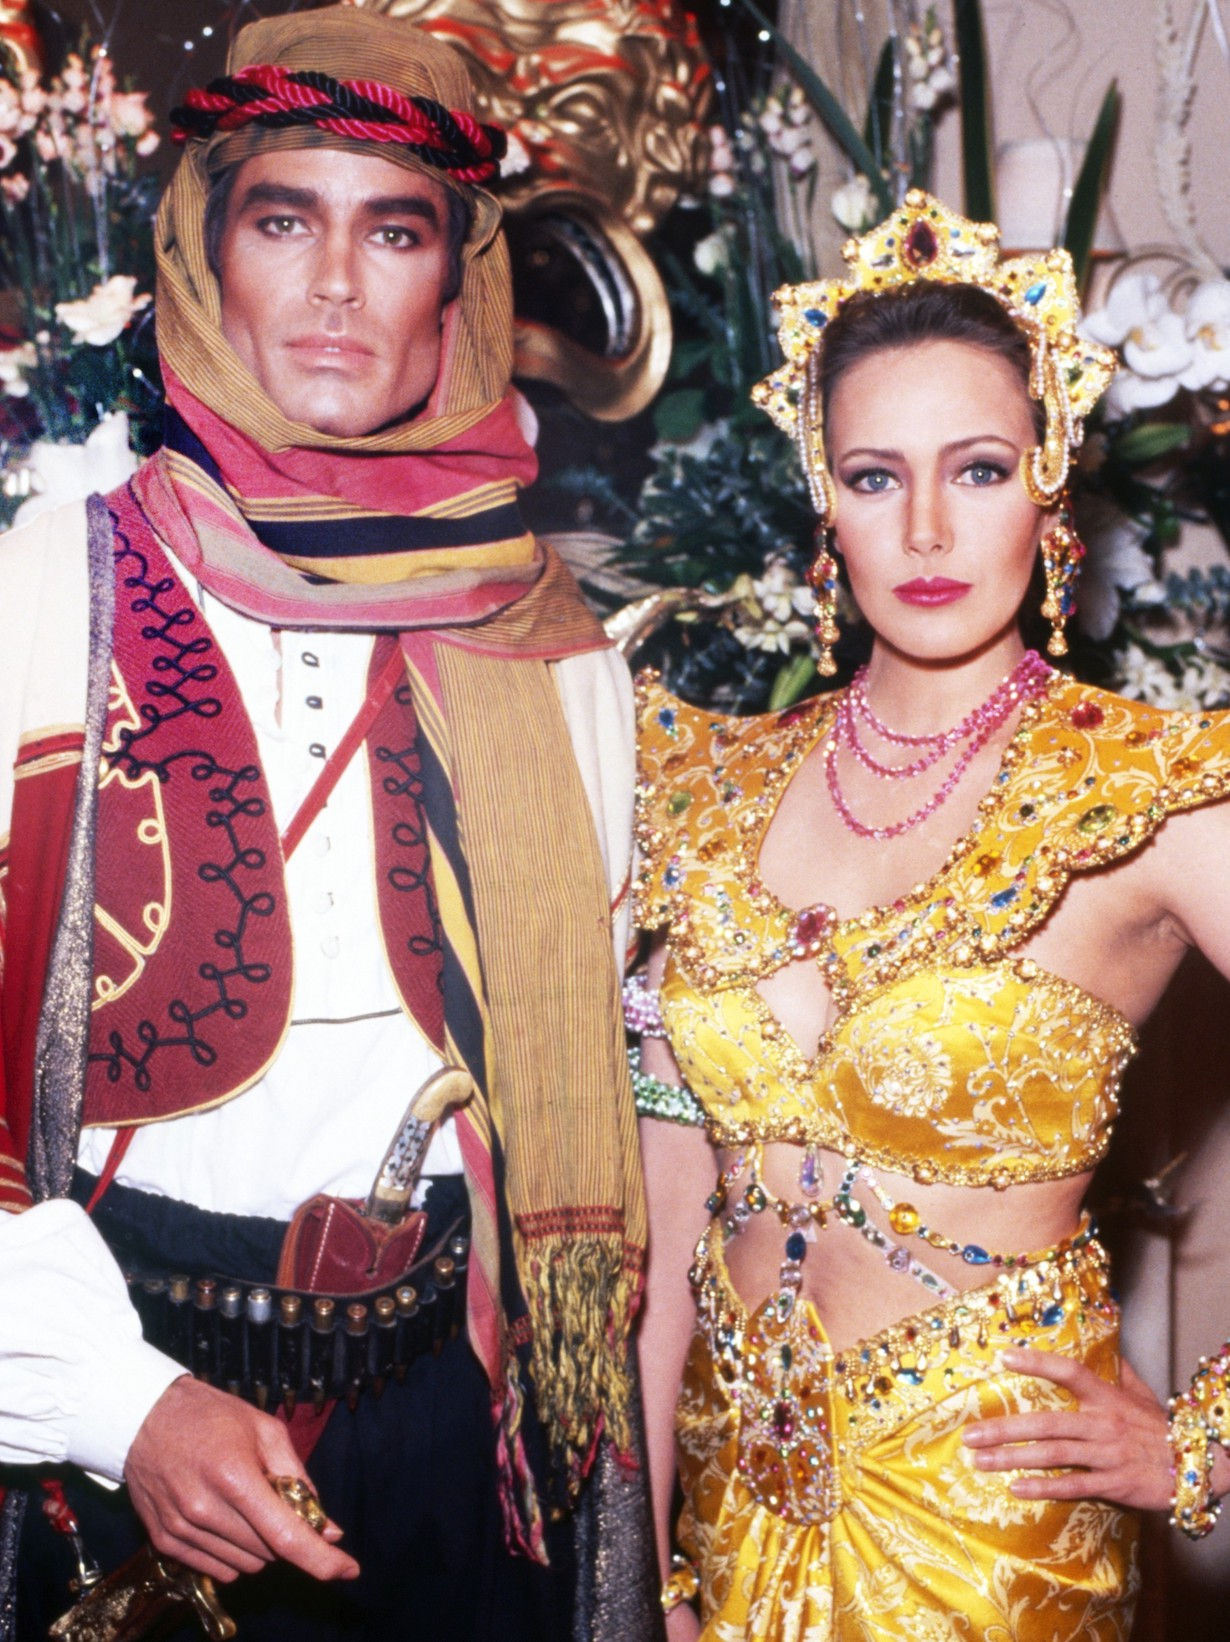 THE BOLD AND THE BEAUTIFUL, from left: Ronn Moss, Hunter Tylo, 1990s, 1987– . /© CBS / Courtesy Everett Collection